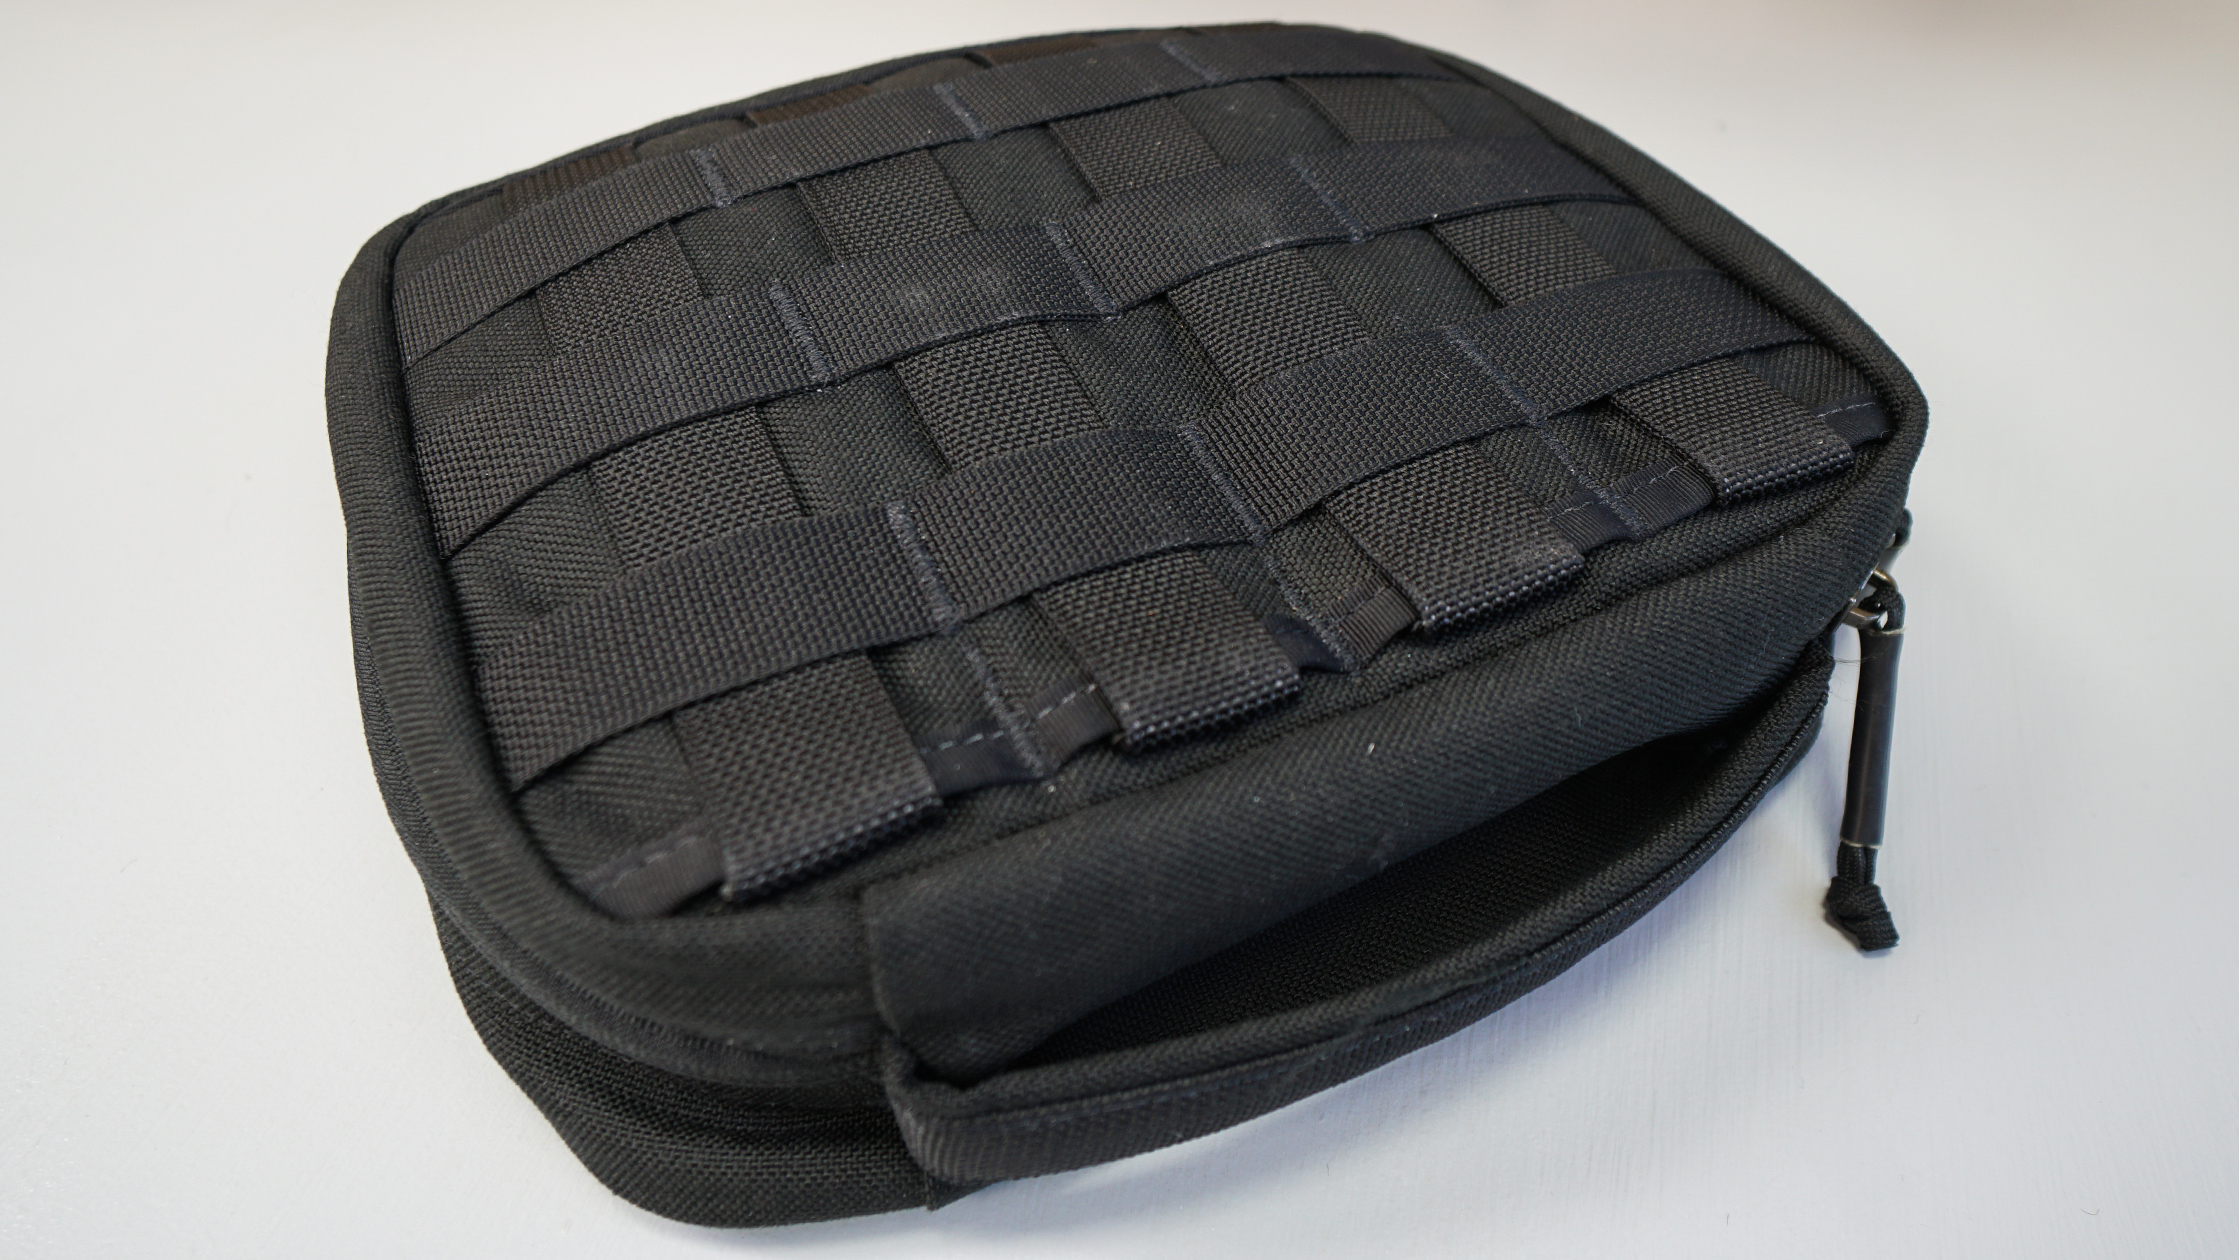 GORUCK GR2 Padded Field Pocket PALS Attachment System